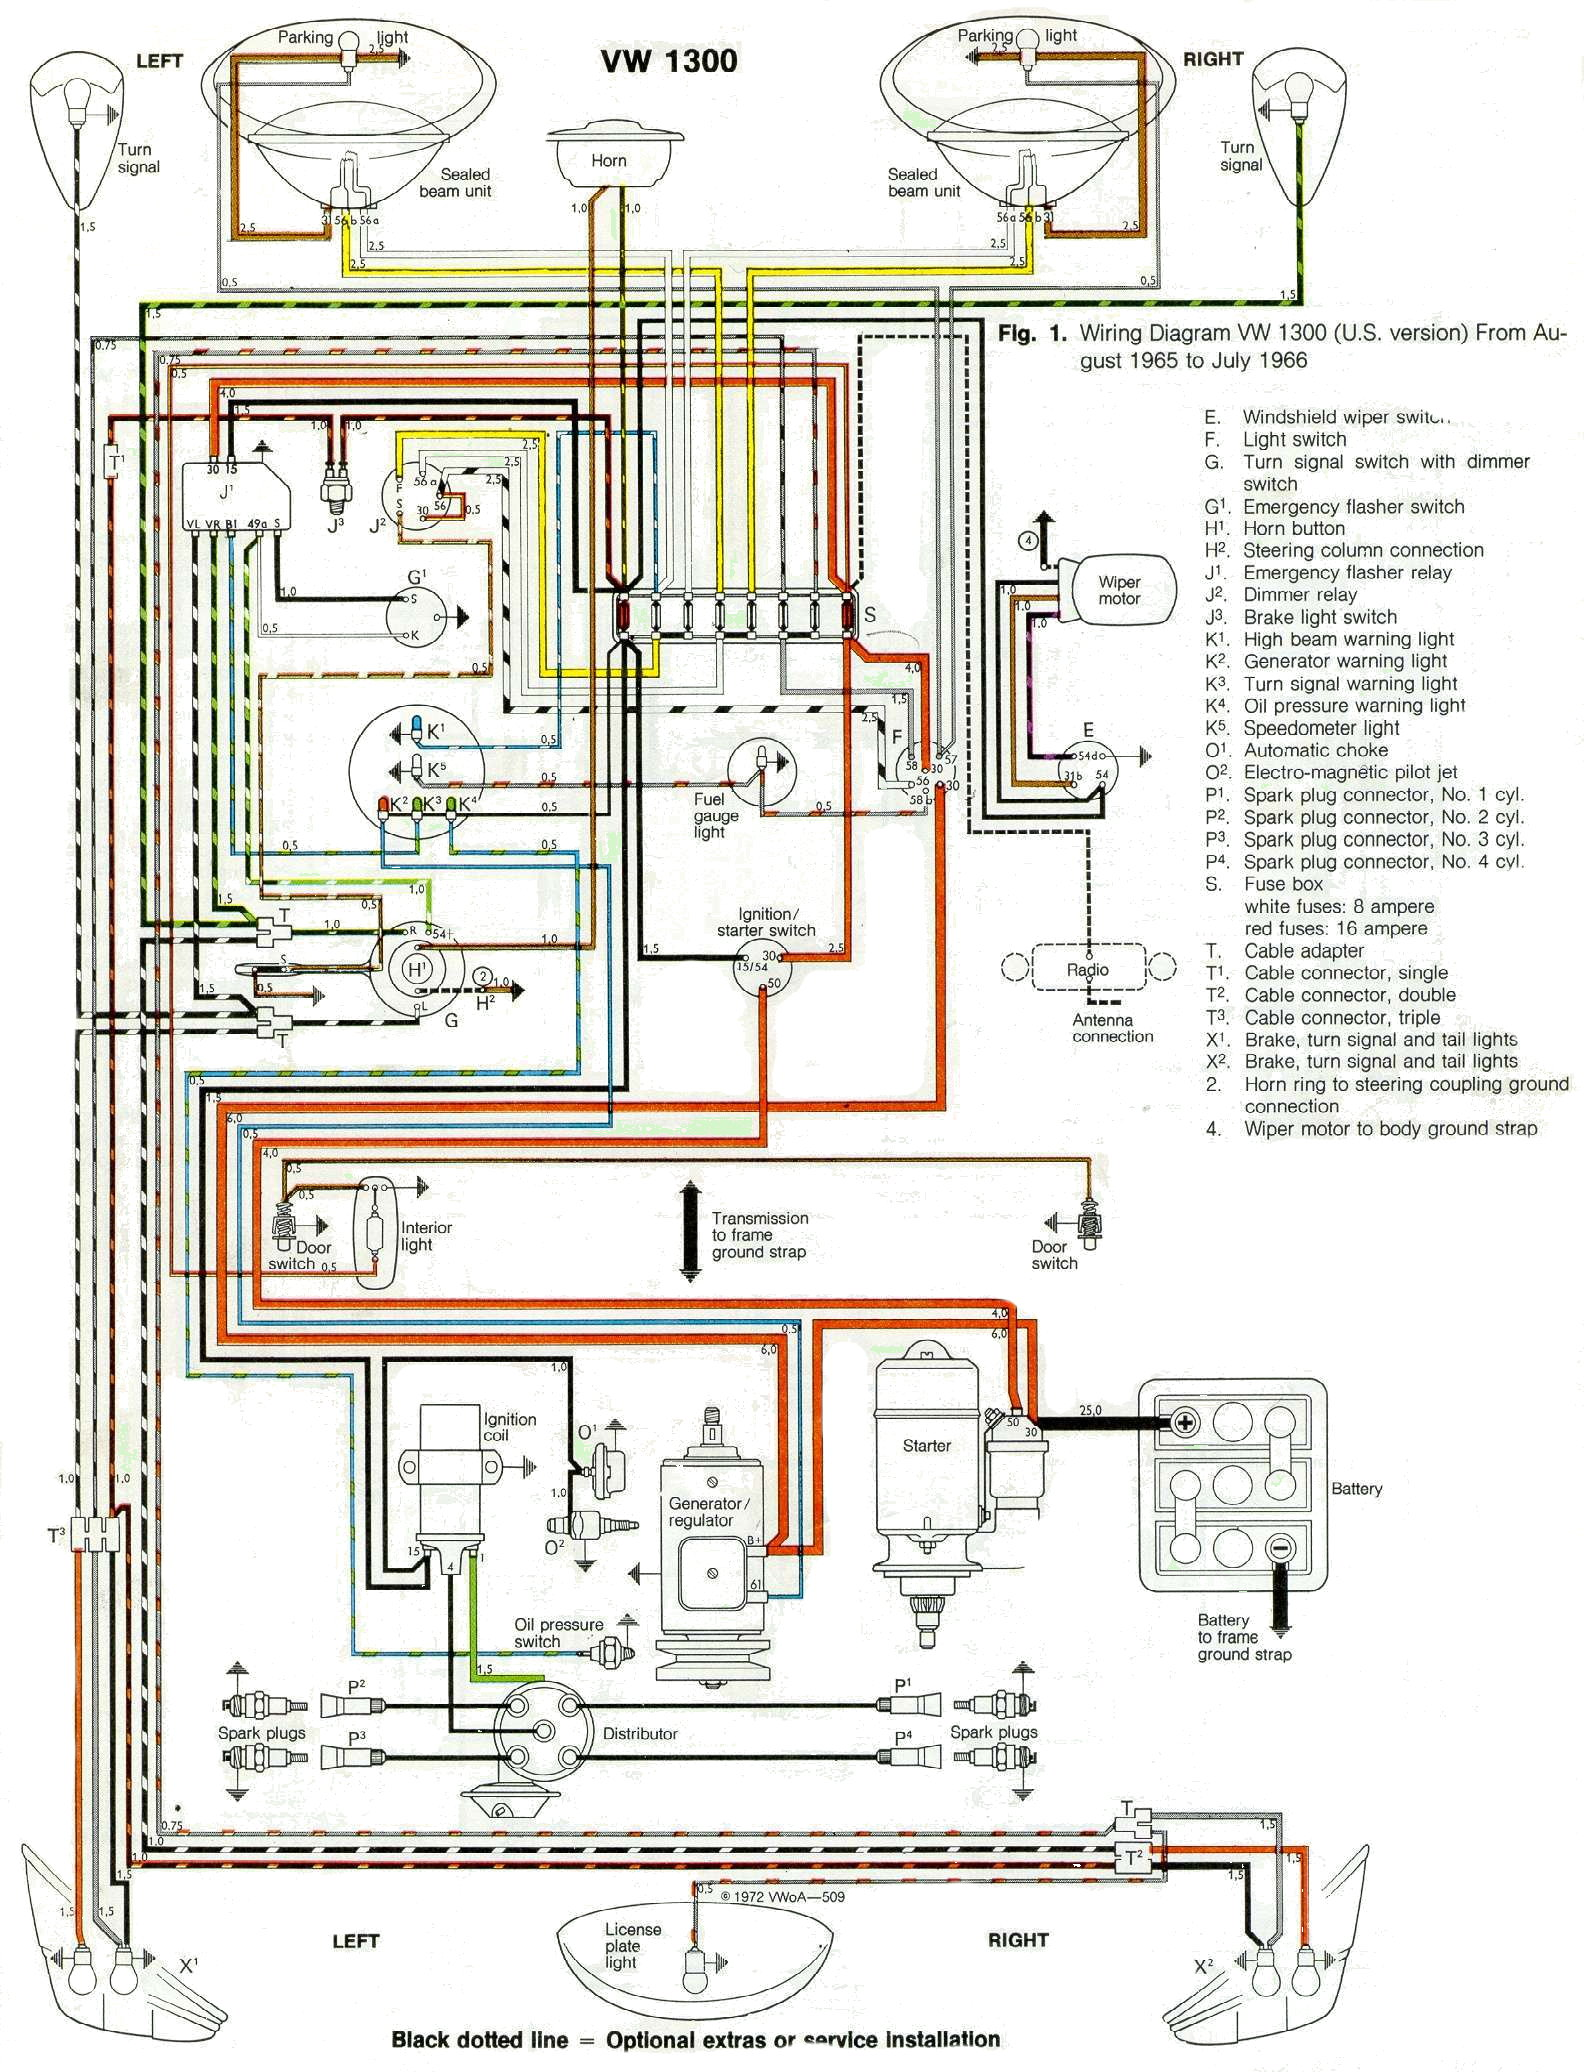 vw beetle headlight wiring diagram image new beetle starter wiring diagram new auto wiring diagram schematic on 1999 vw beetle headlight wiring